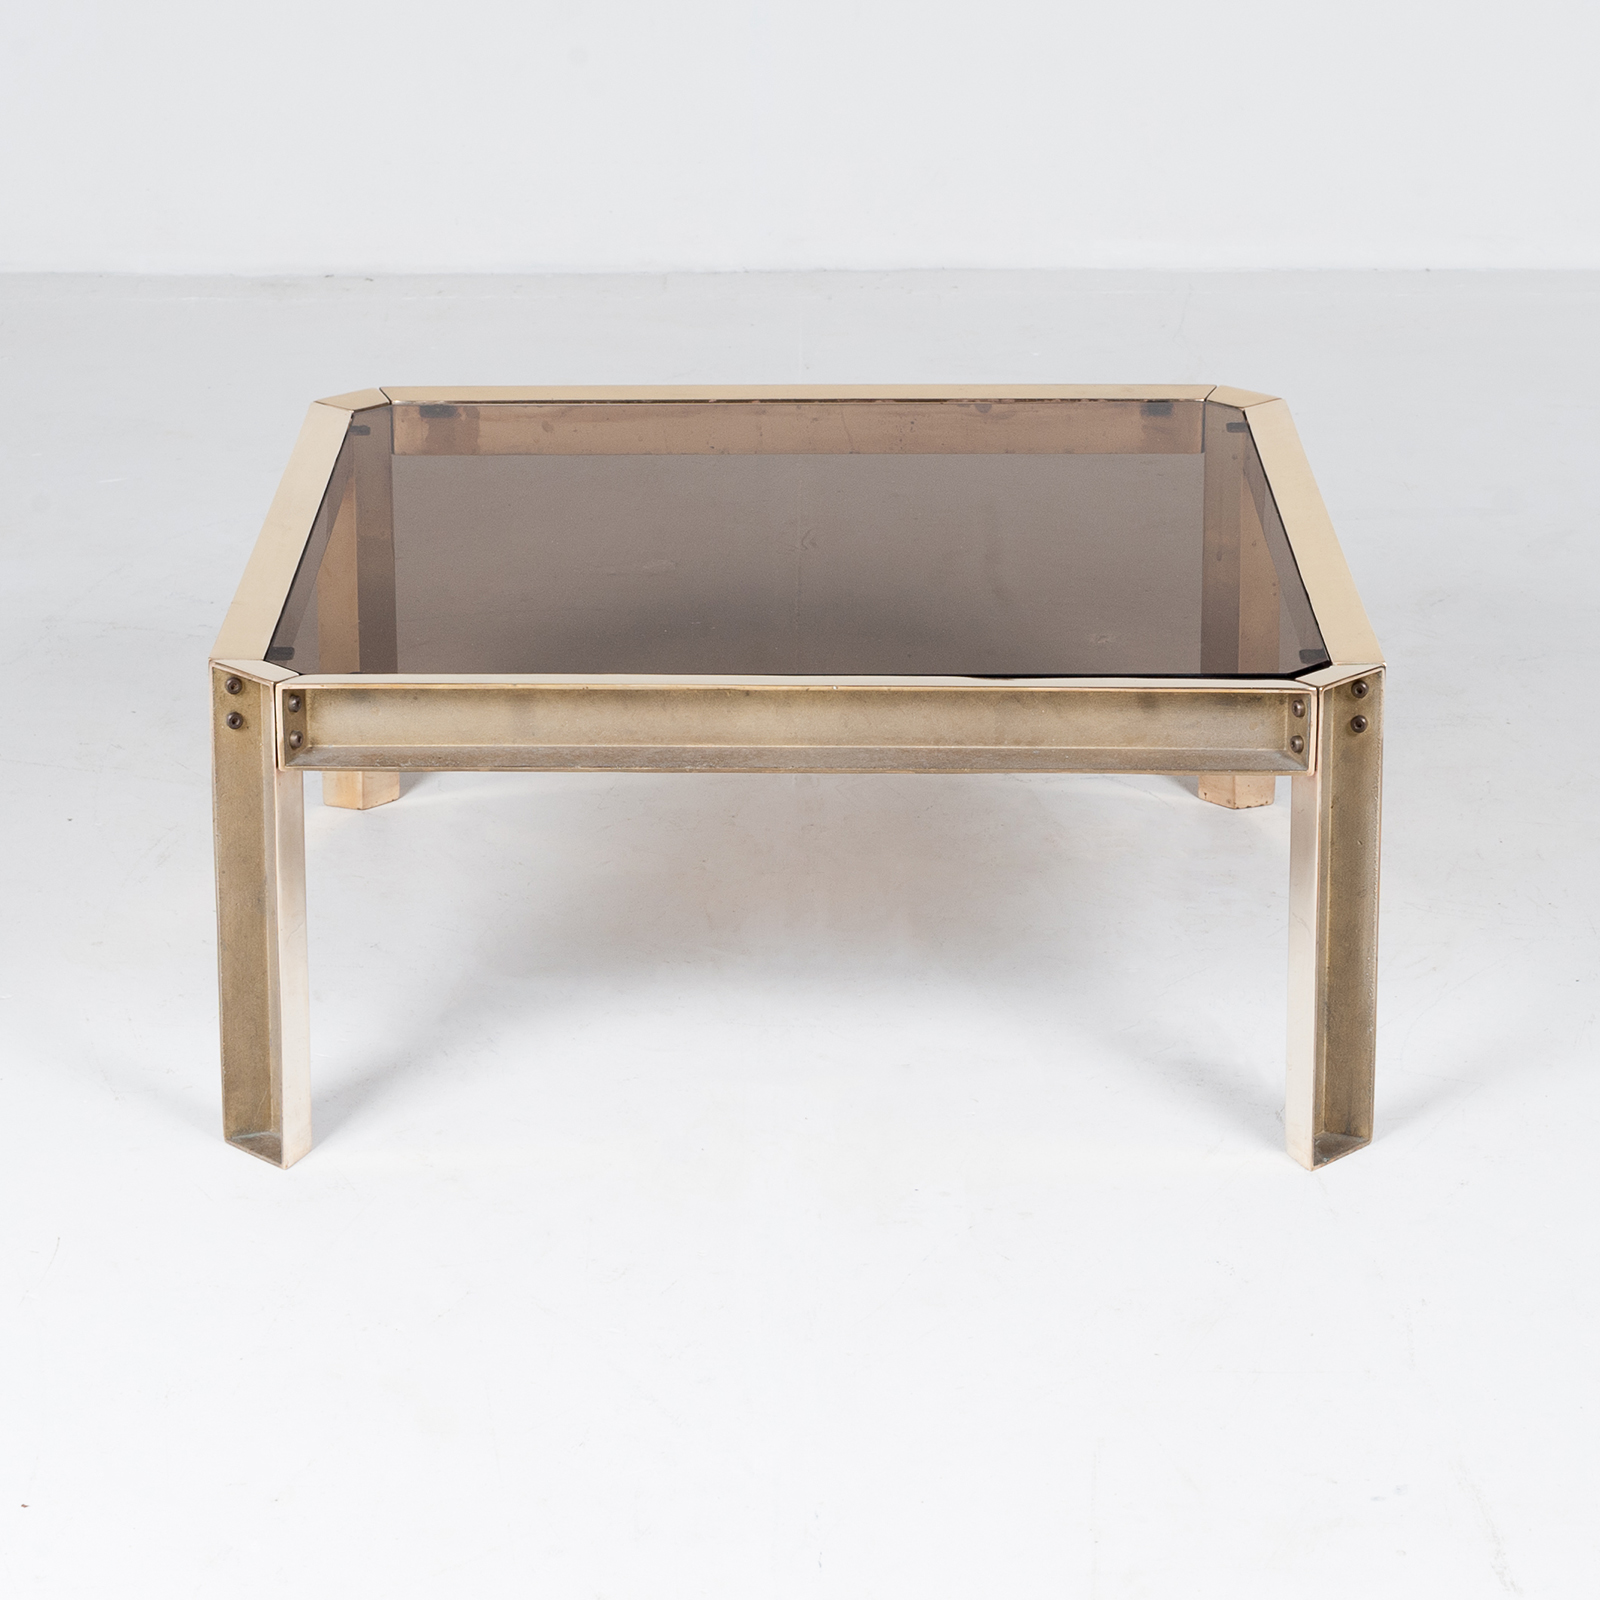 Side Table By Peter Ghyczy With Hollow Cast Brass Frame And Smoked Glass Top, 1970s, The Netherlands 26